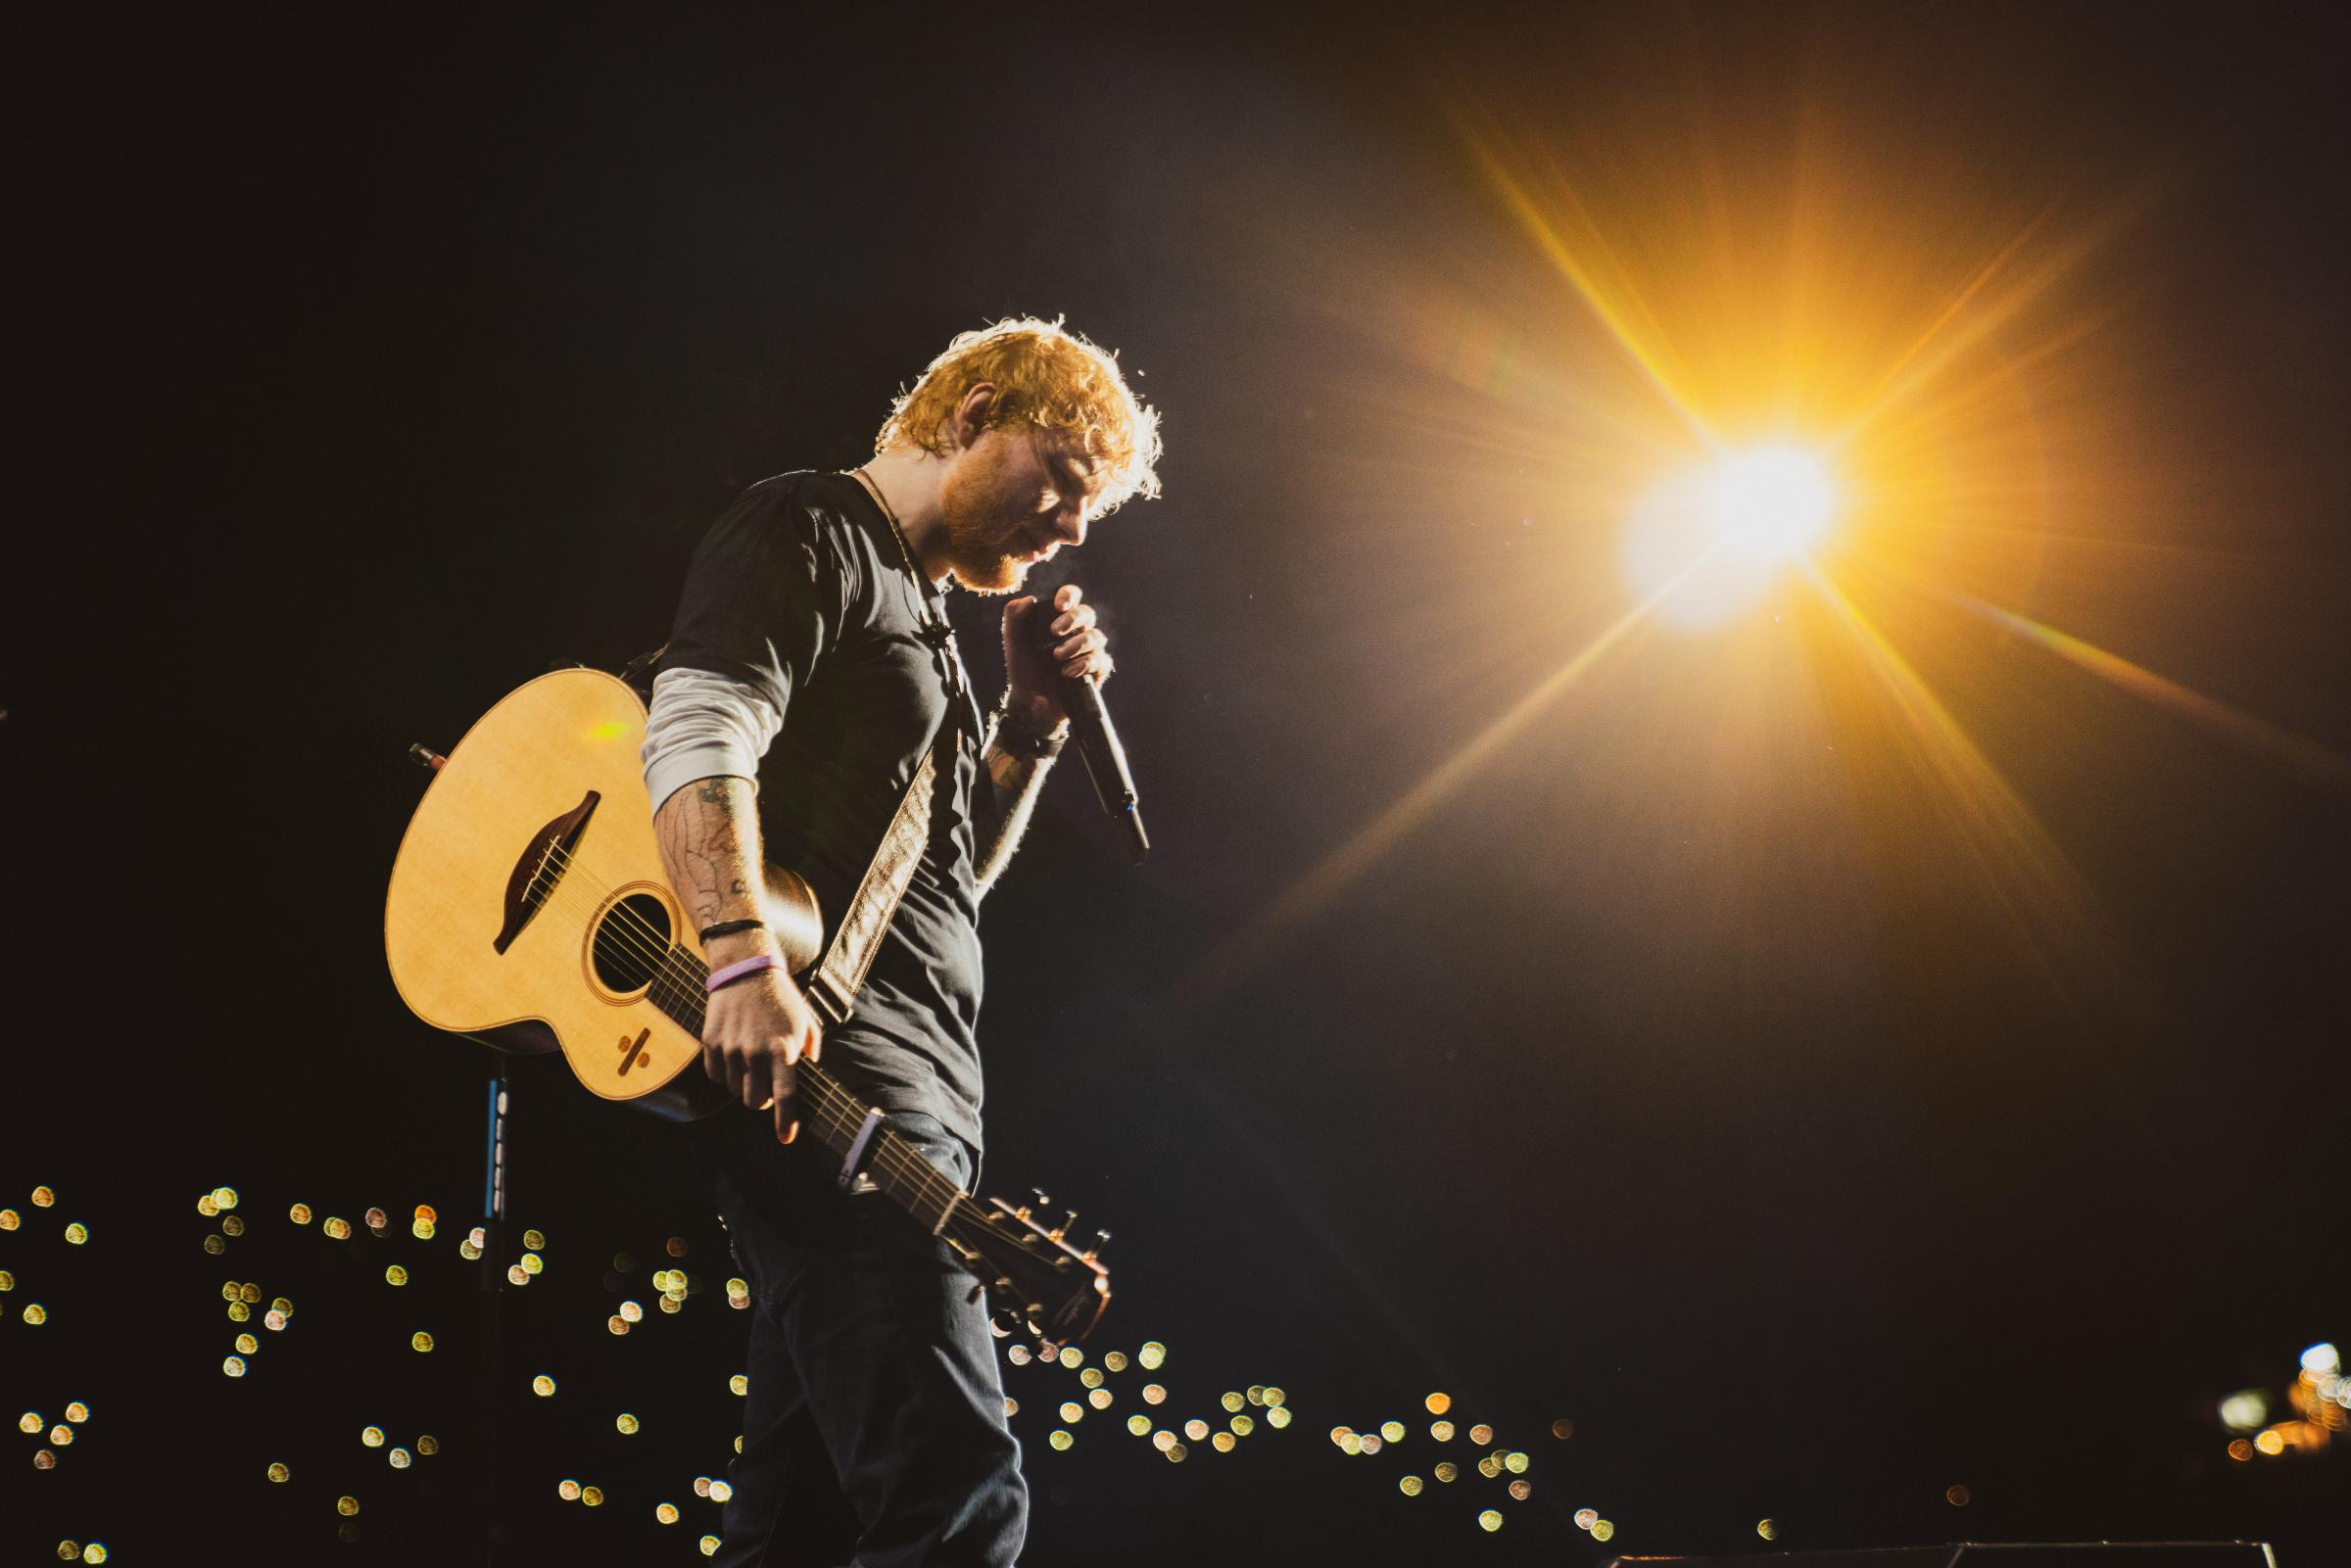 REVIEW: Going to see Ed Sheeran at Roundhay Park? Prepare yourself for an incredible evening.